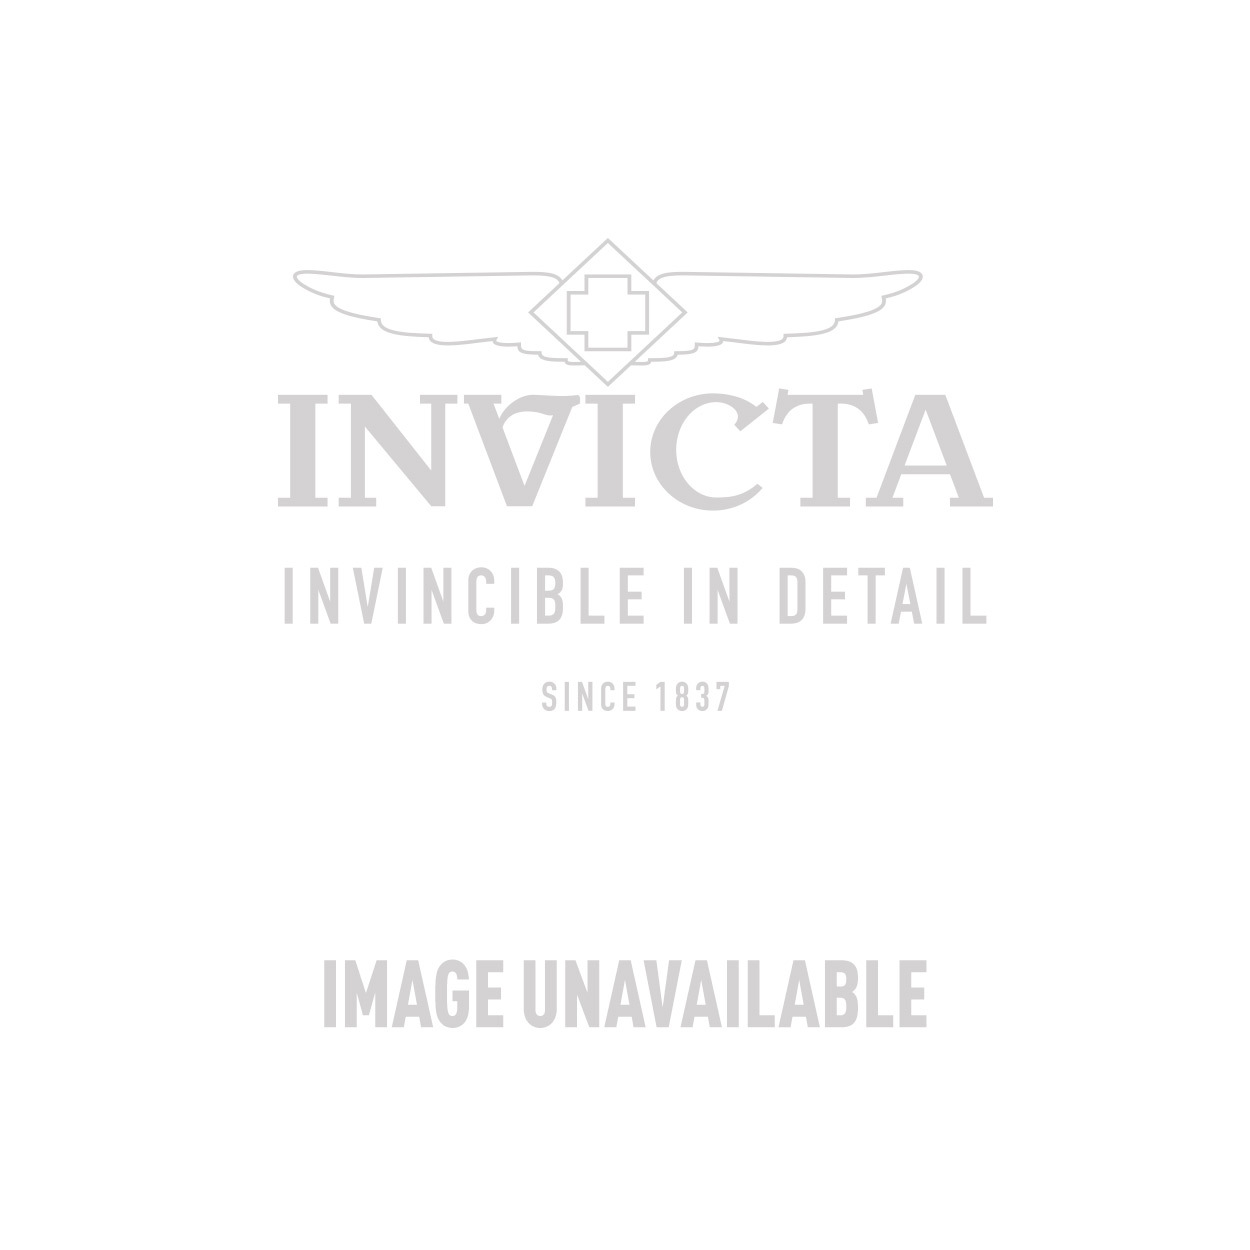 Invicta Vintage Swiss Movement Quartz Watch - Stainless Steel case with Black tone Leather band - Model 12222